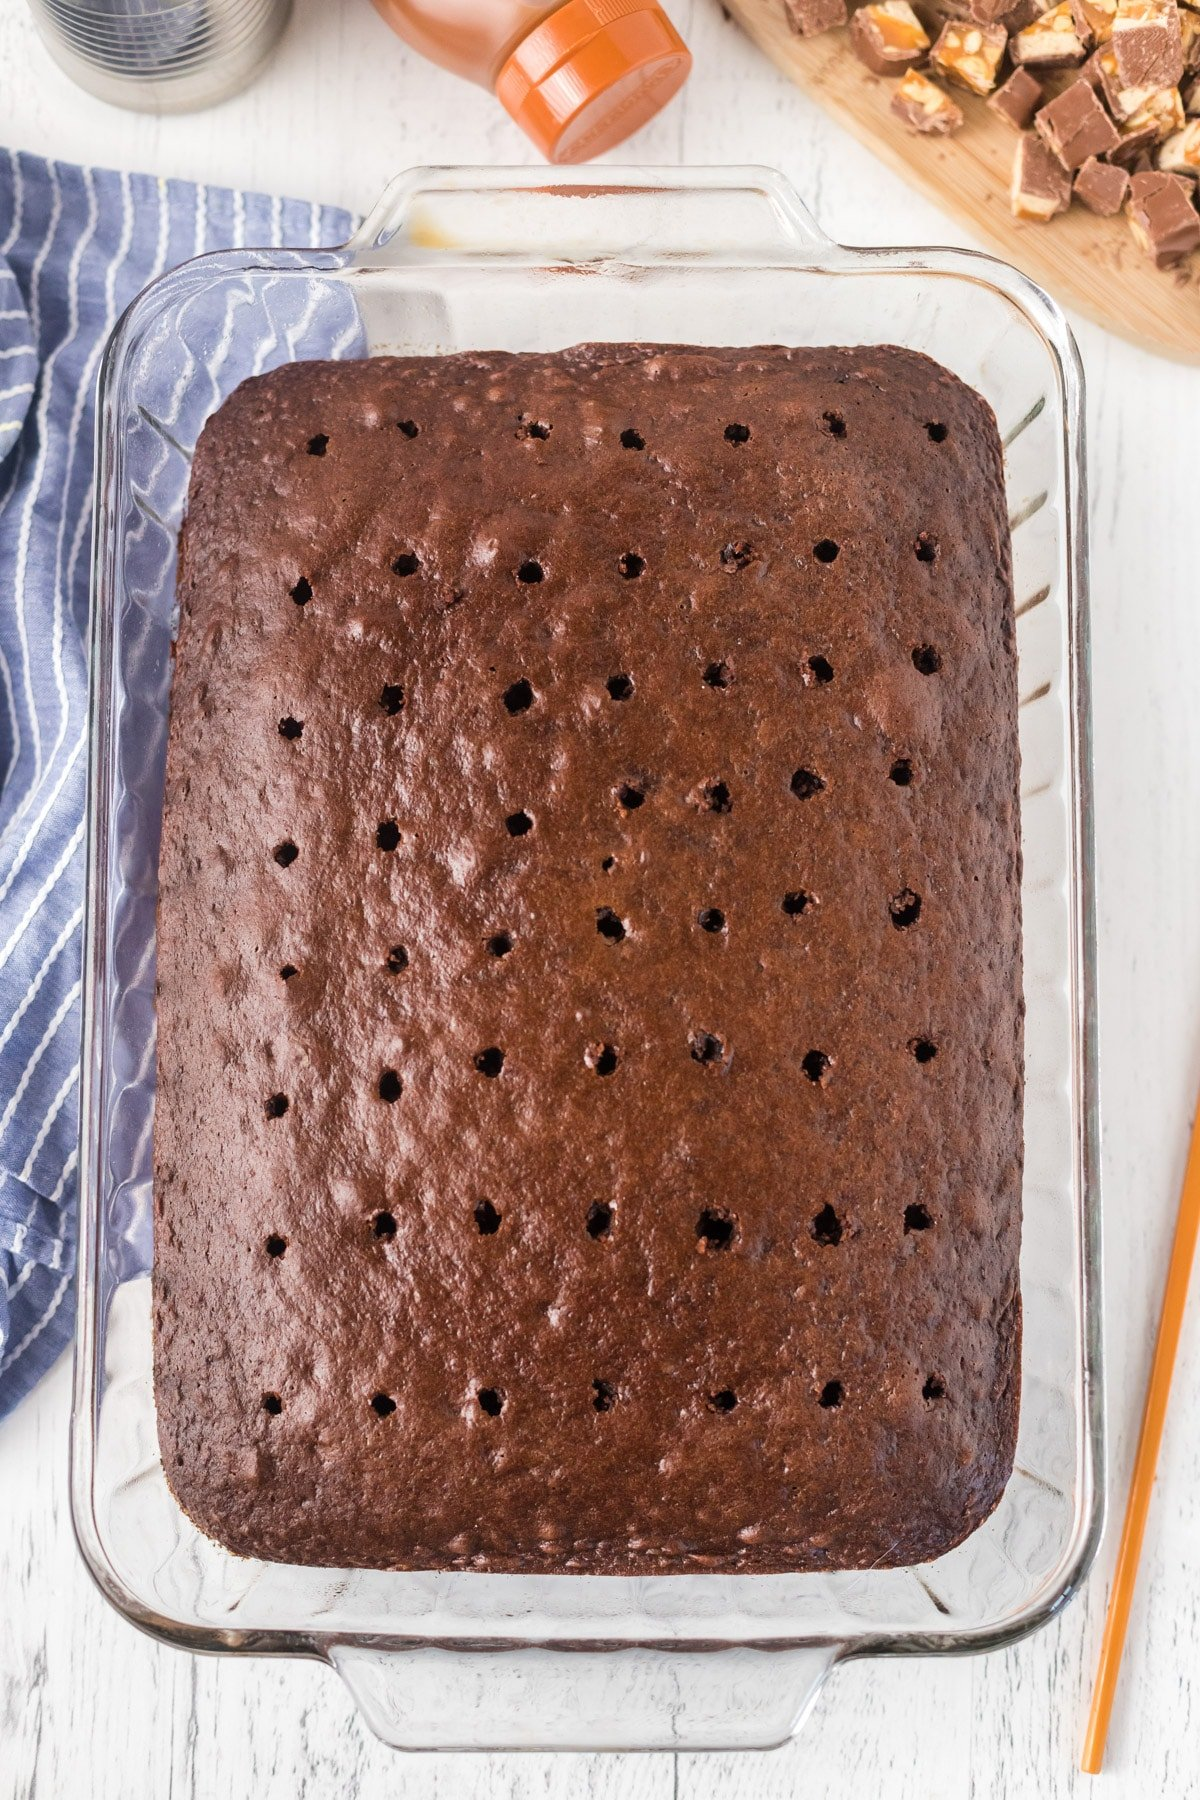 Chocolate cake with holes poked in it